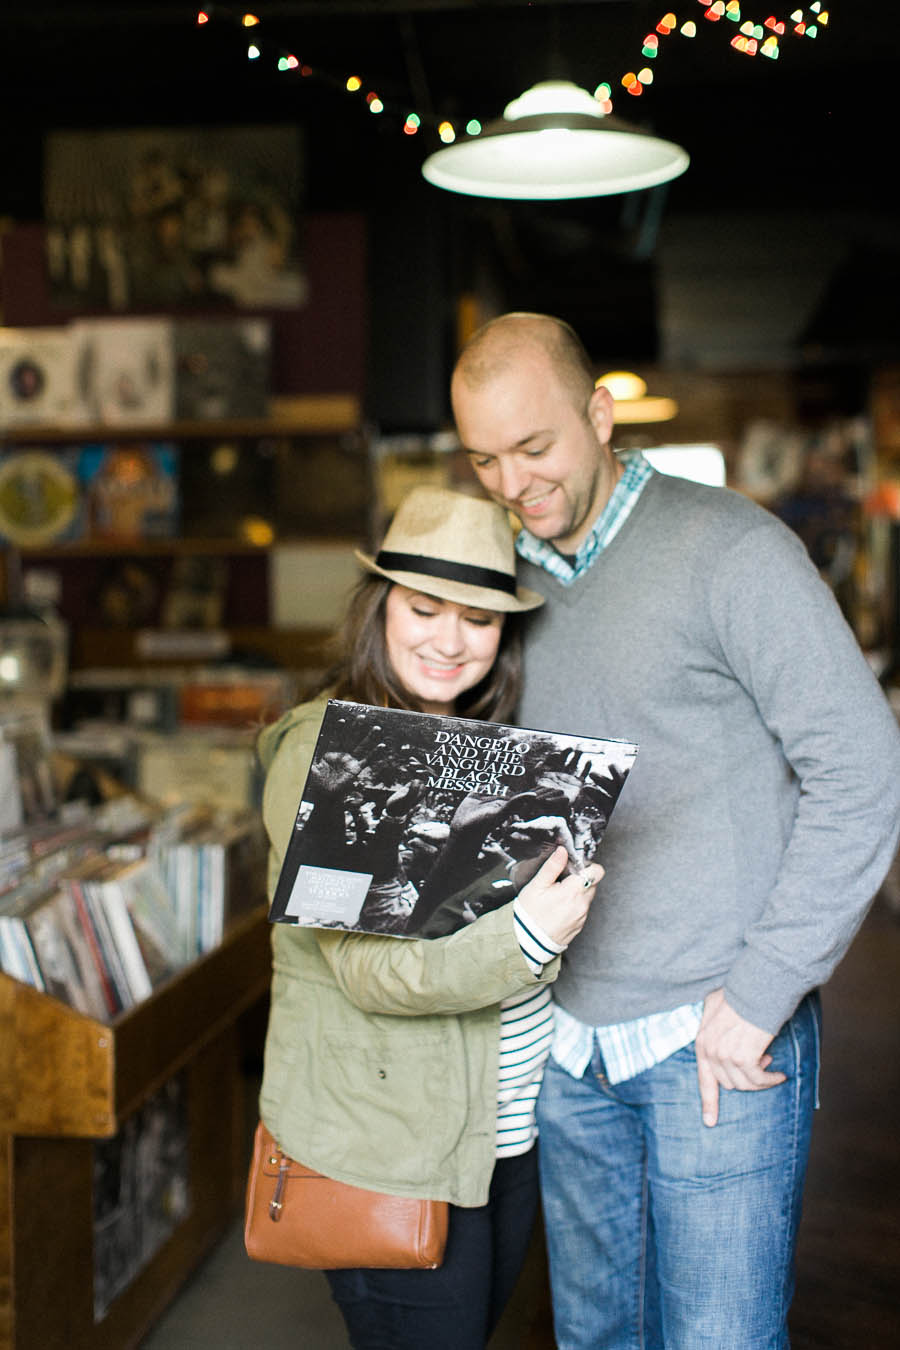 nashville documentary bookstore record shop engagement session relaxed film photographer ©2016abigailbobophotography-23.jpg